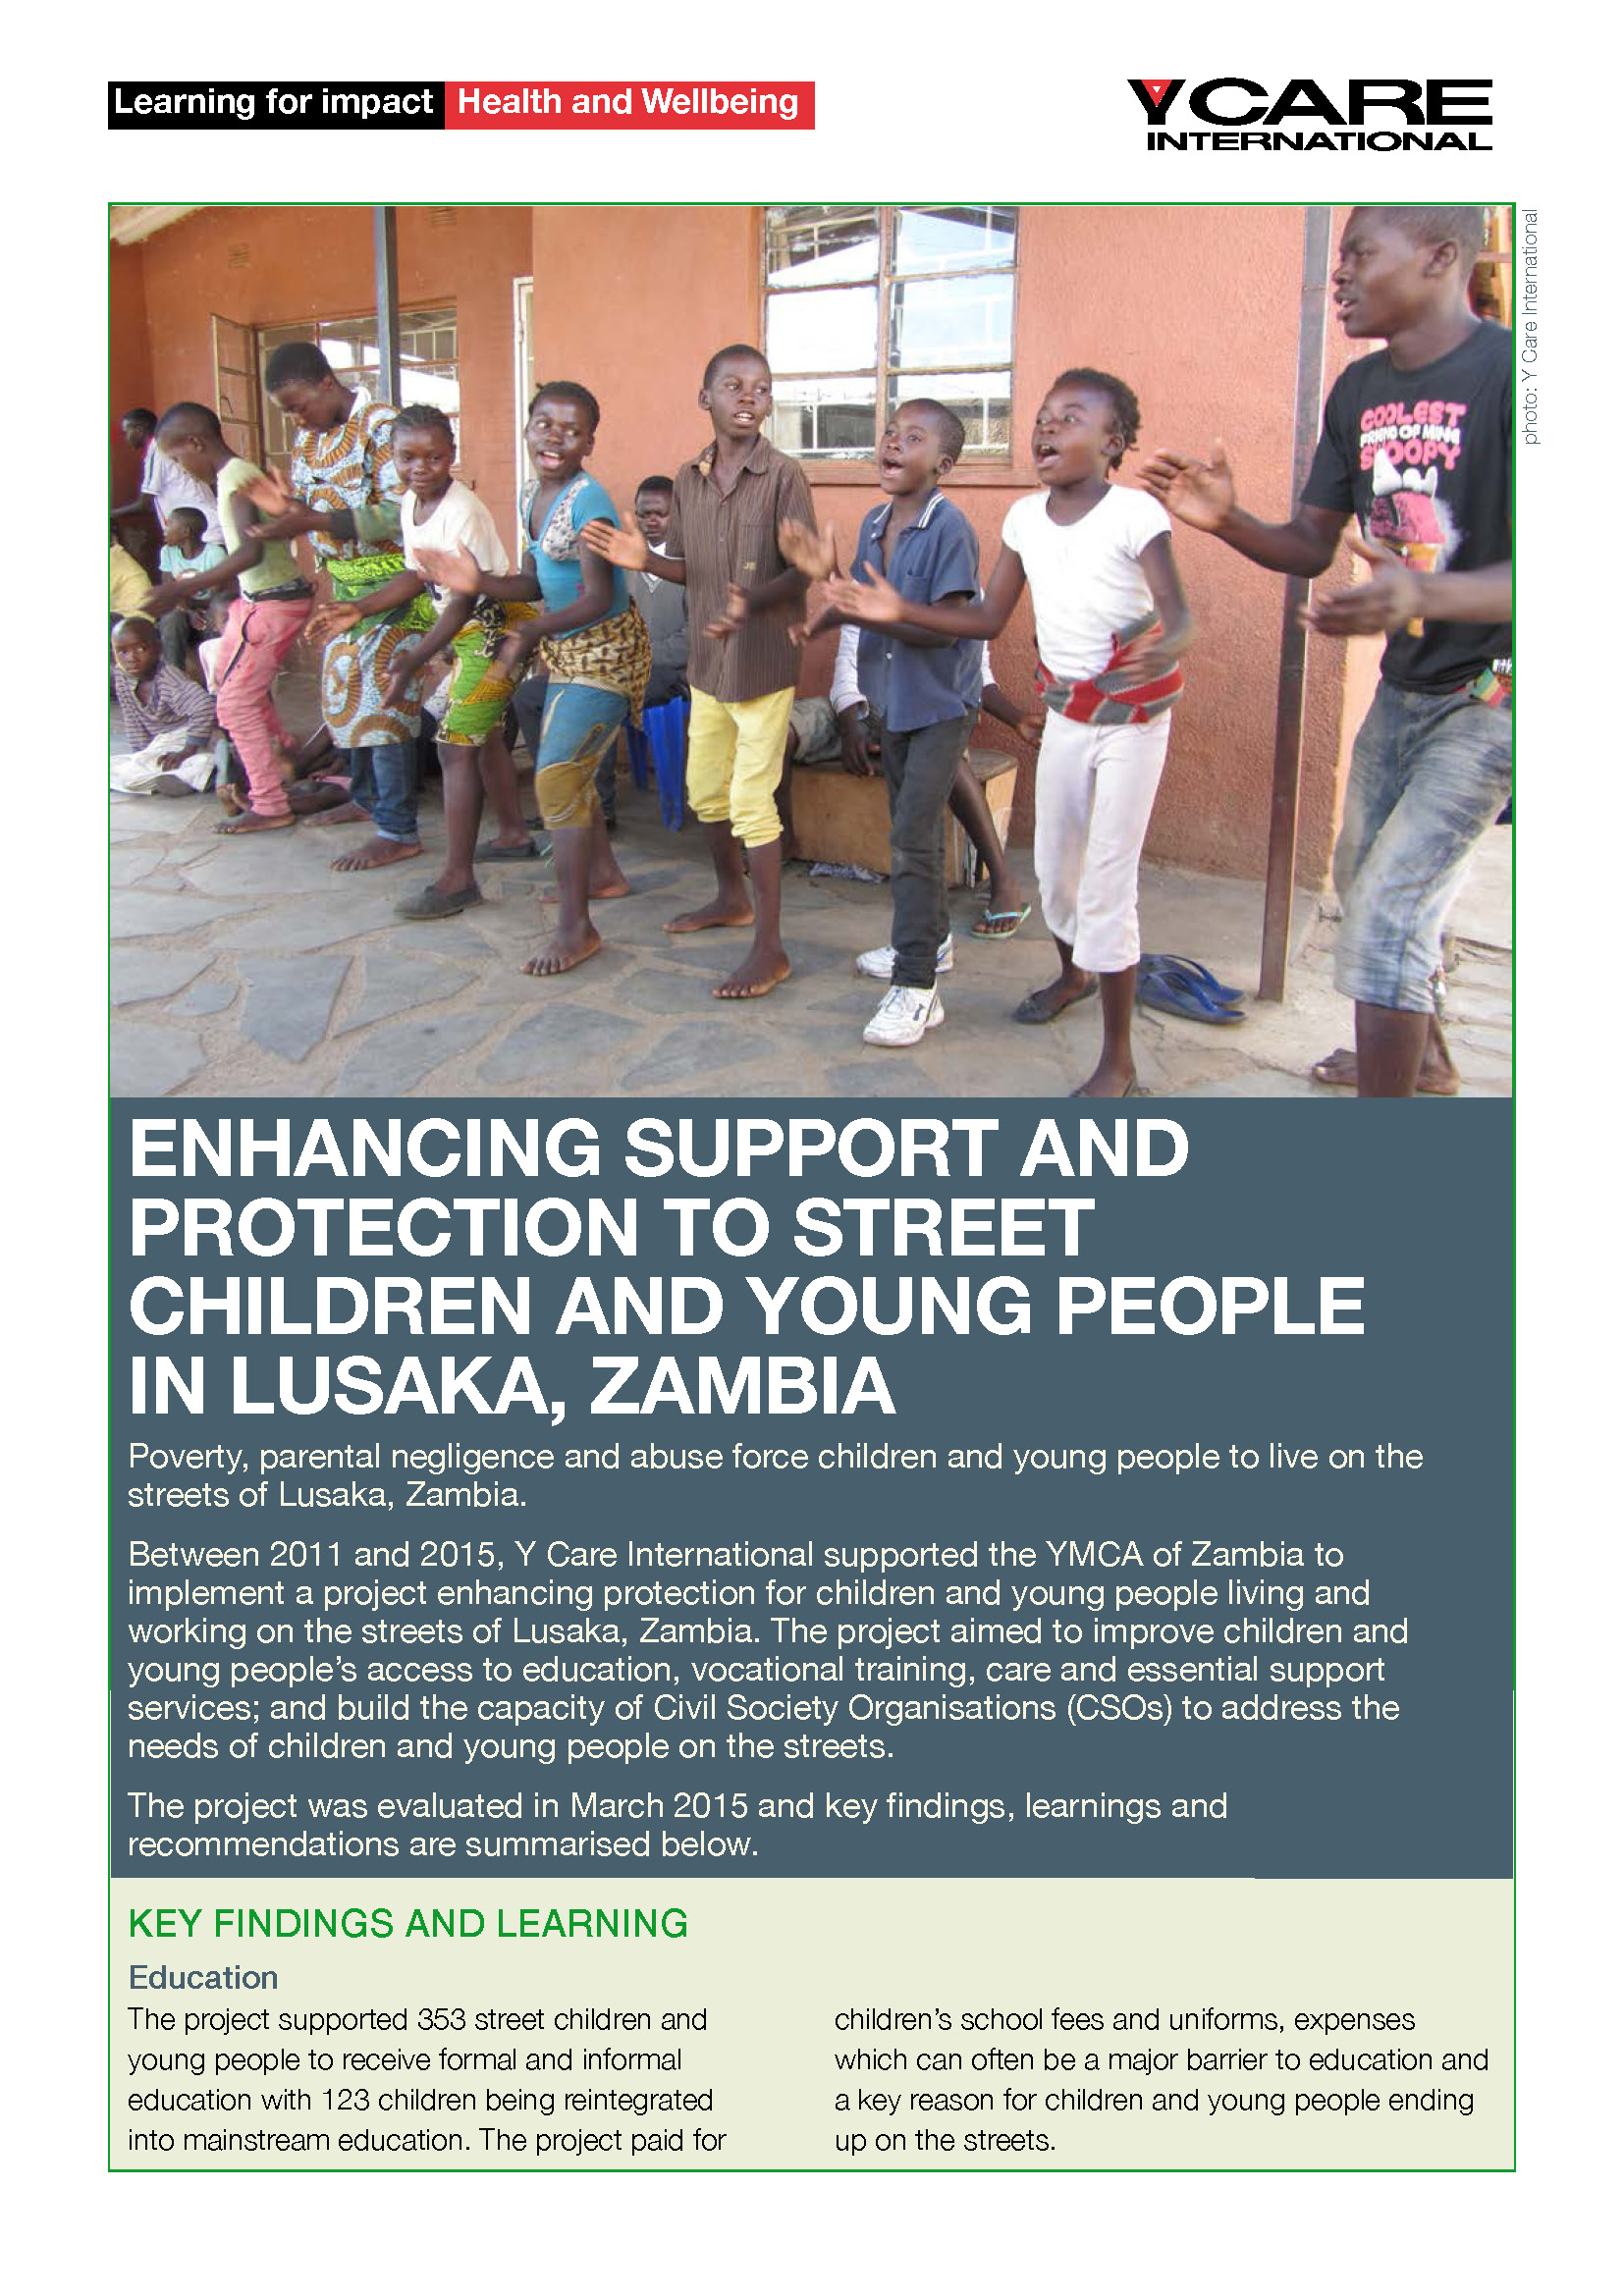 support children and young peoples health